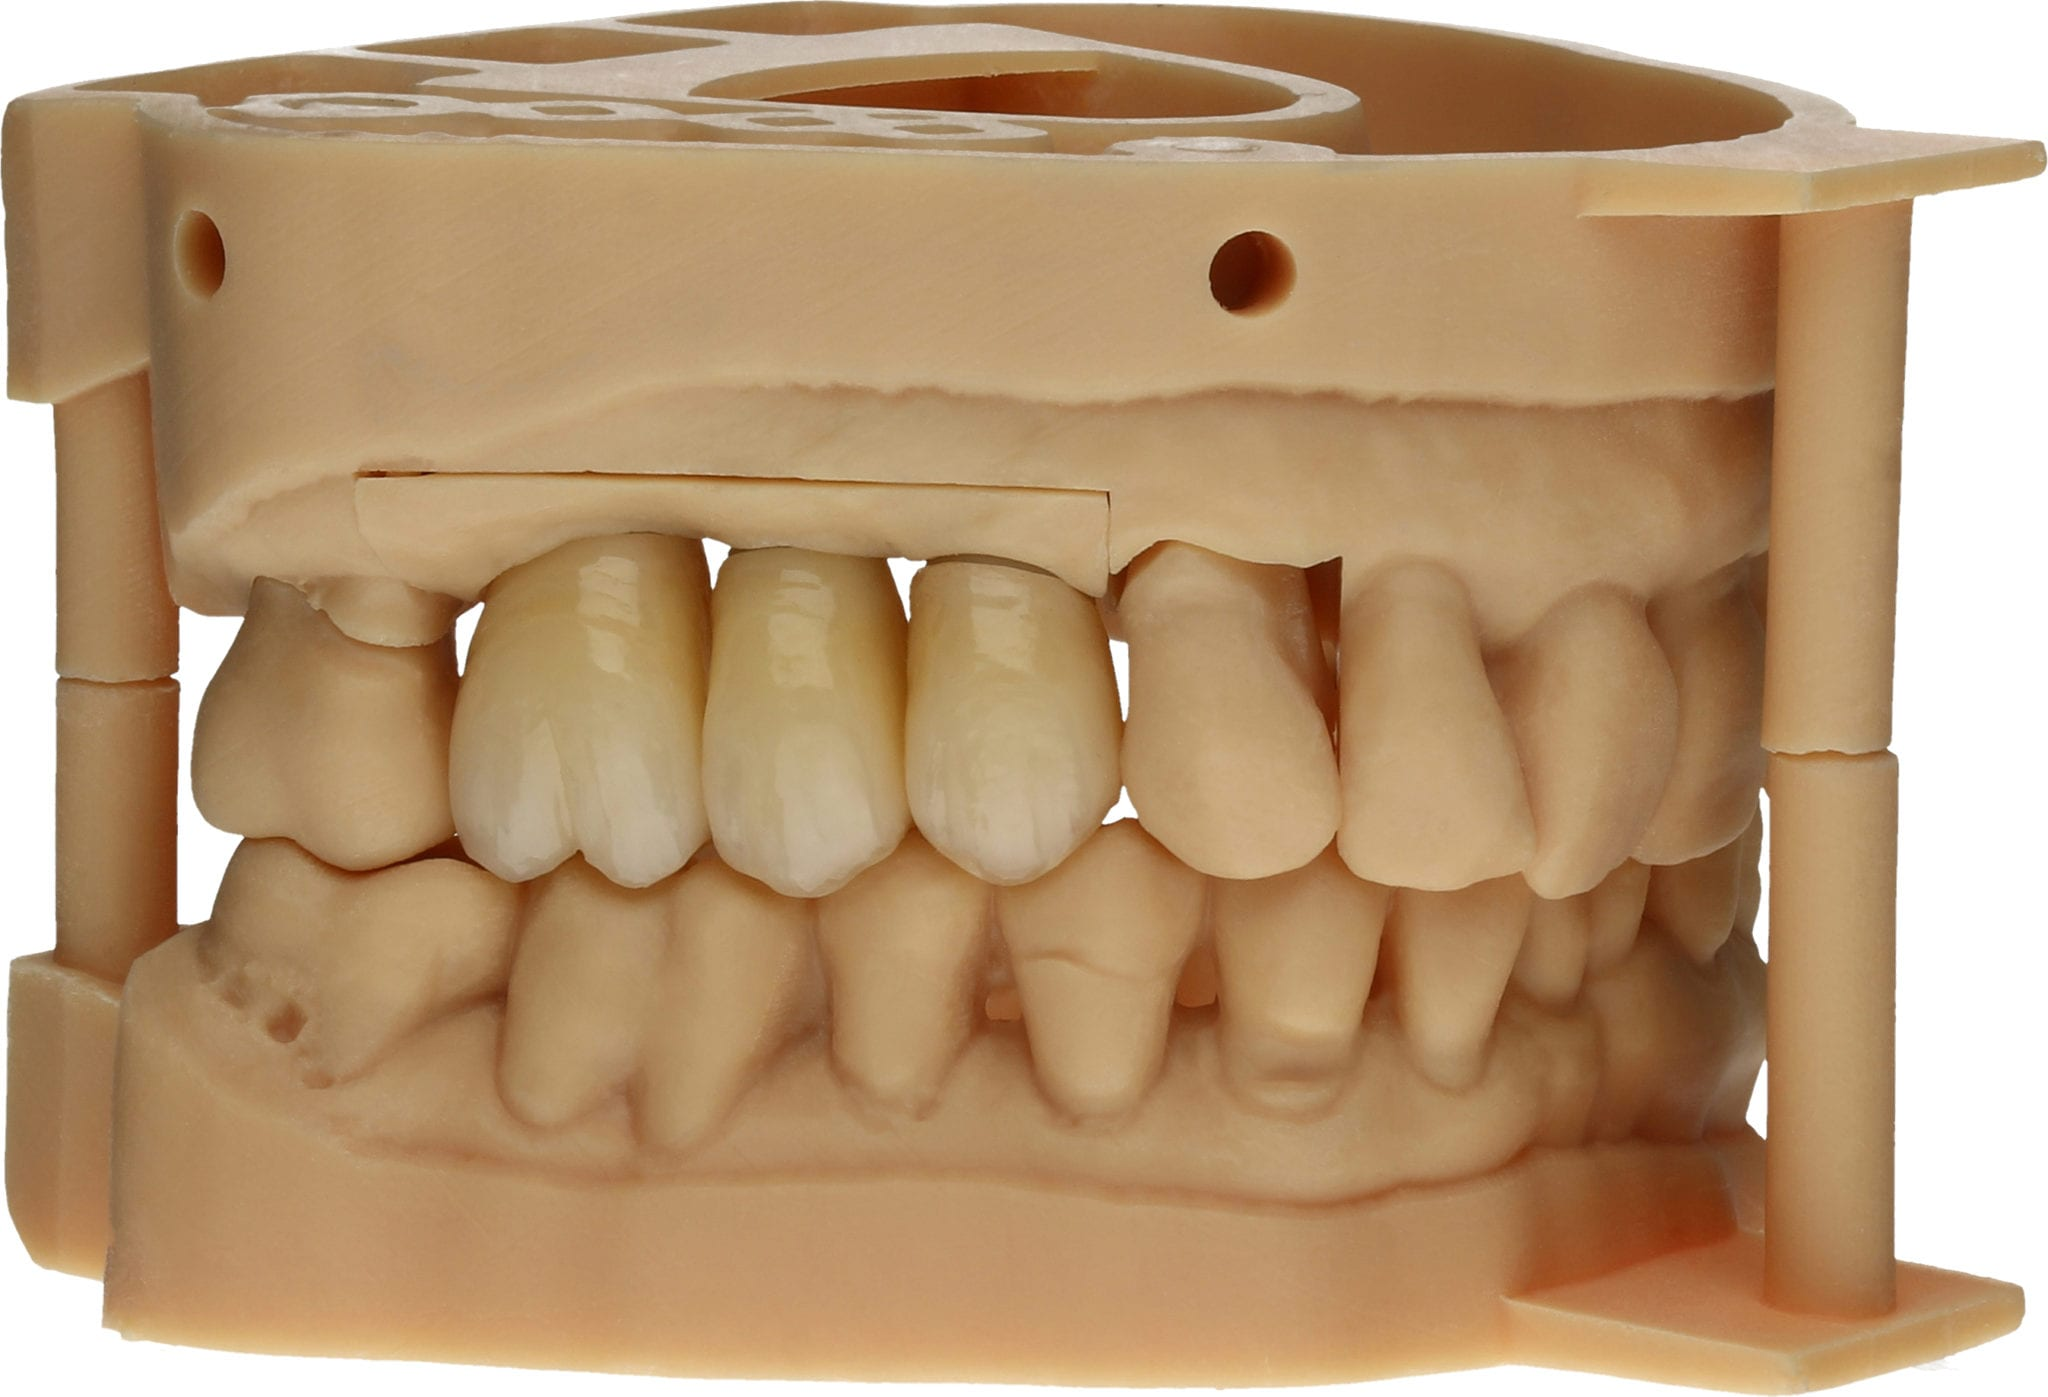 Digitales dentales Modell nach Intraoralscan